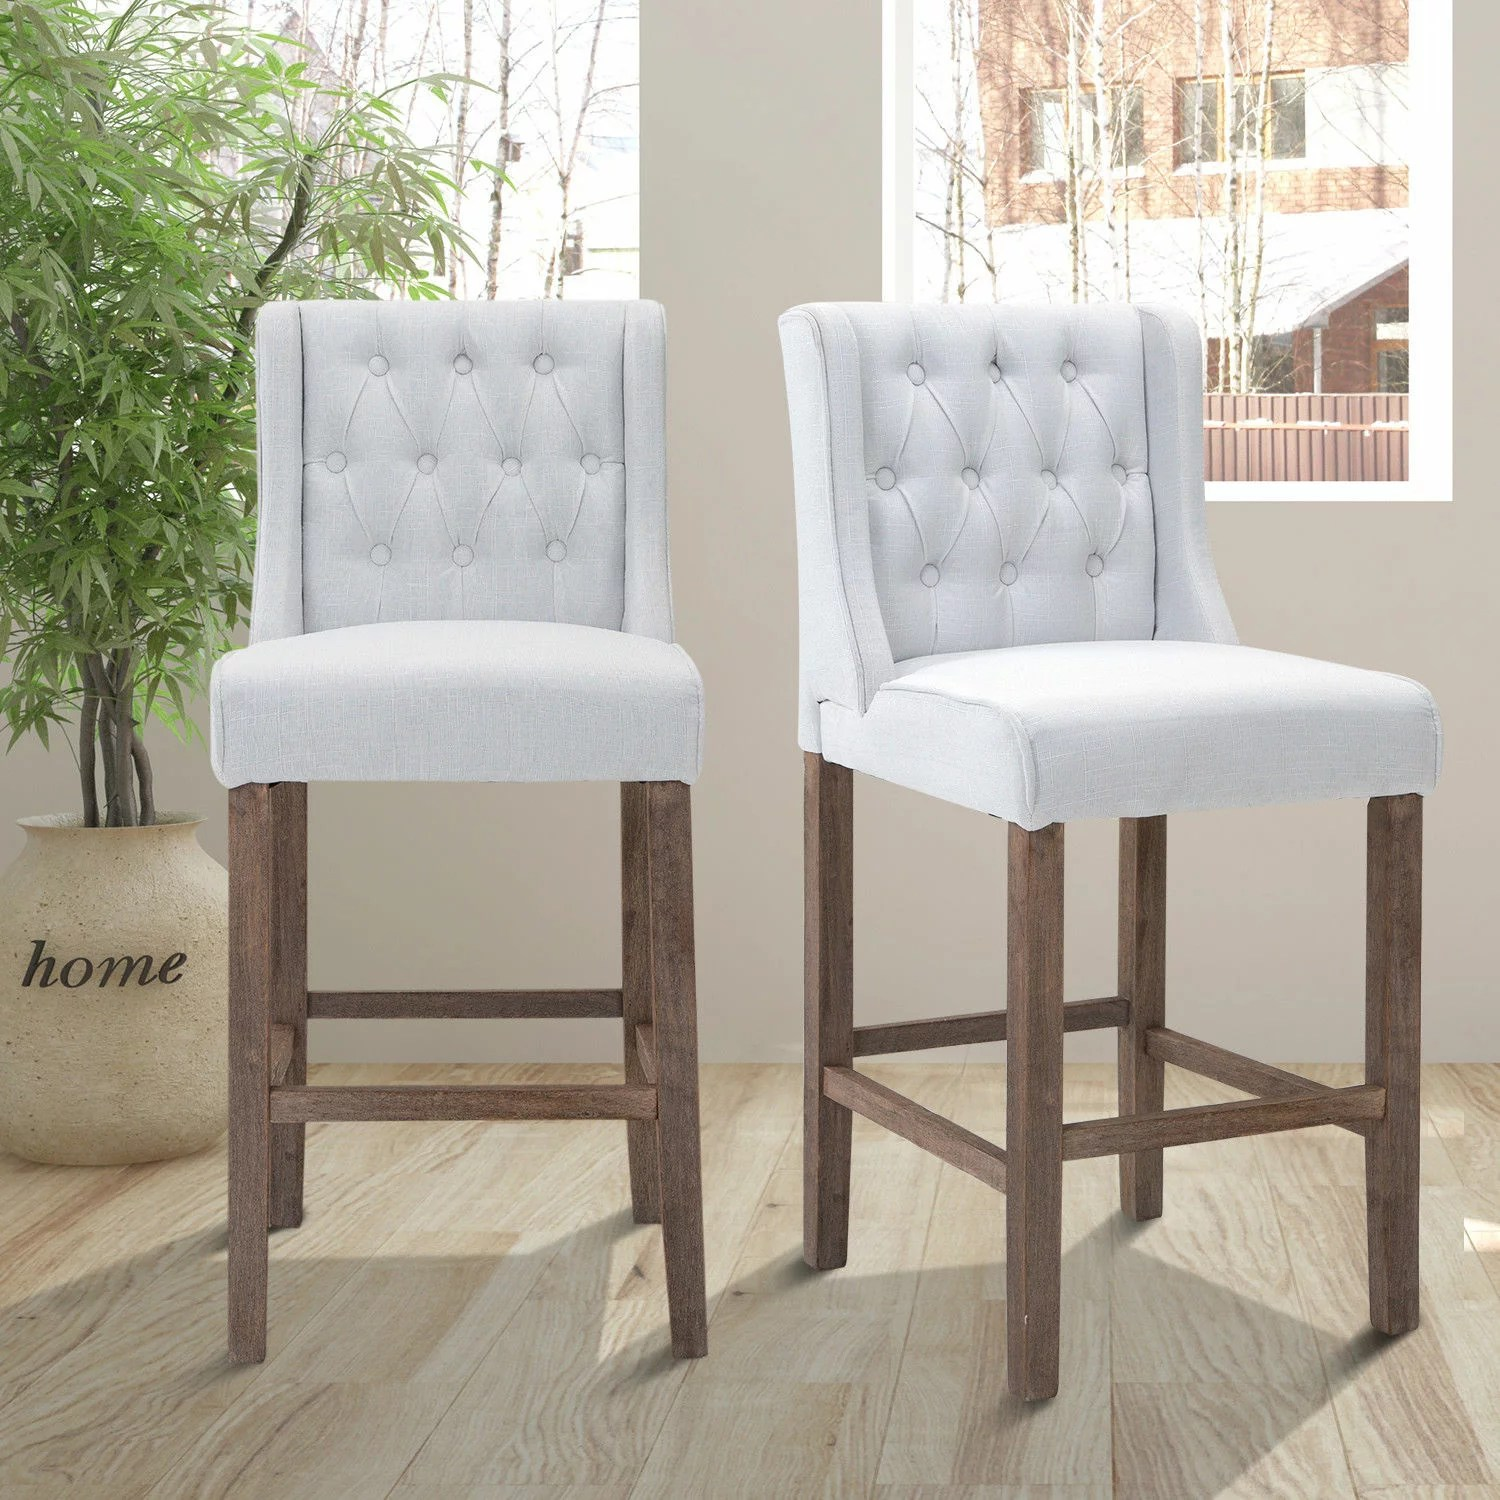 tufted wingback dining chair wedding cover hire packages aosom homcom 40 quot counter height armless